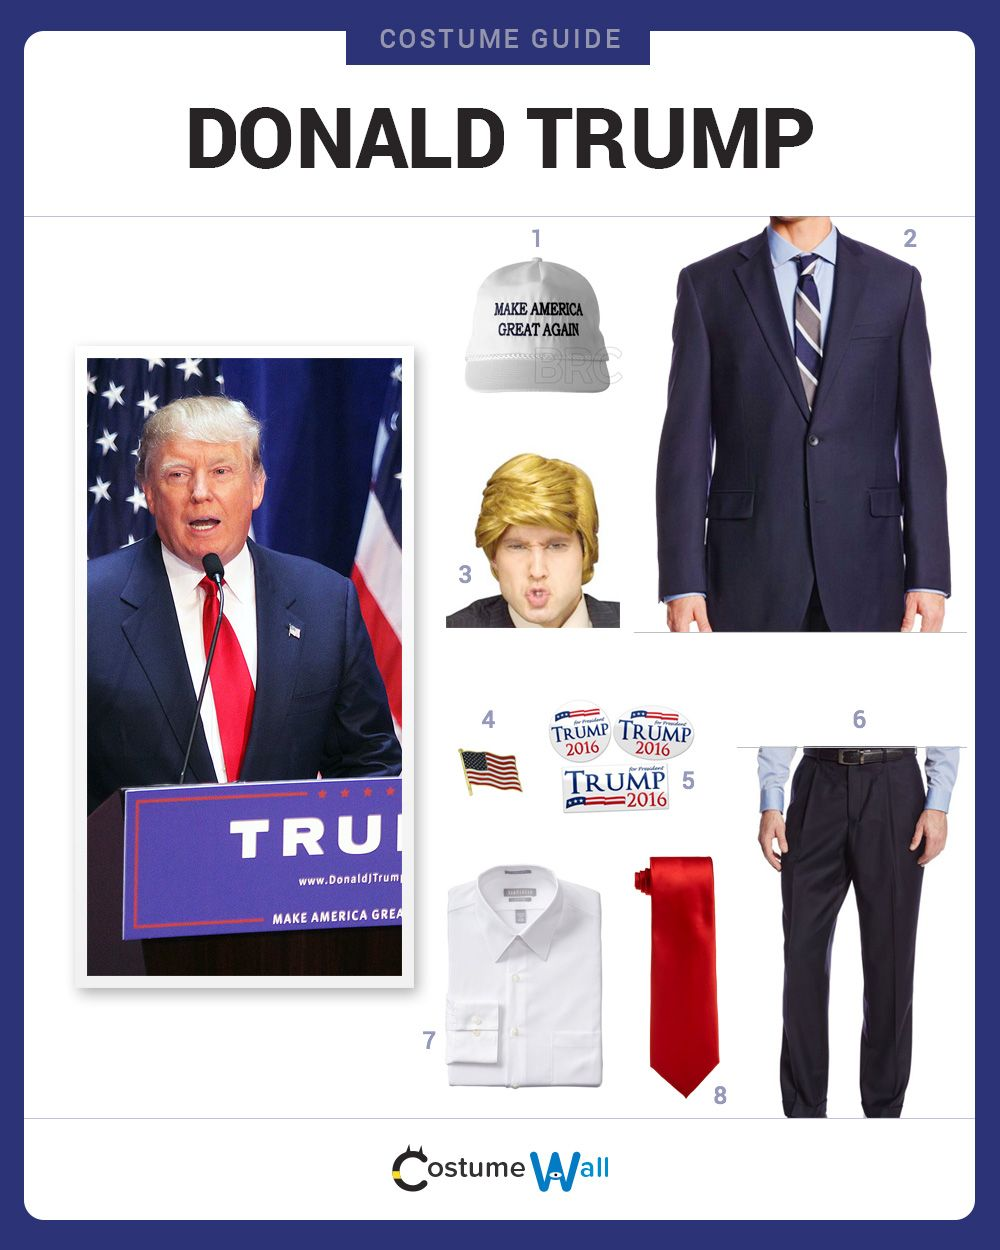 d3fc15f89 Dress like real estate mogul Donald Trump. Get cosplay inspiration and more Donald  Trump costume ideas.